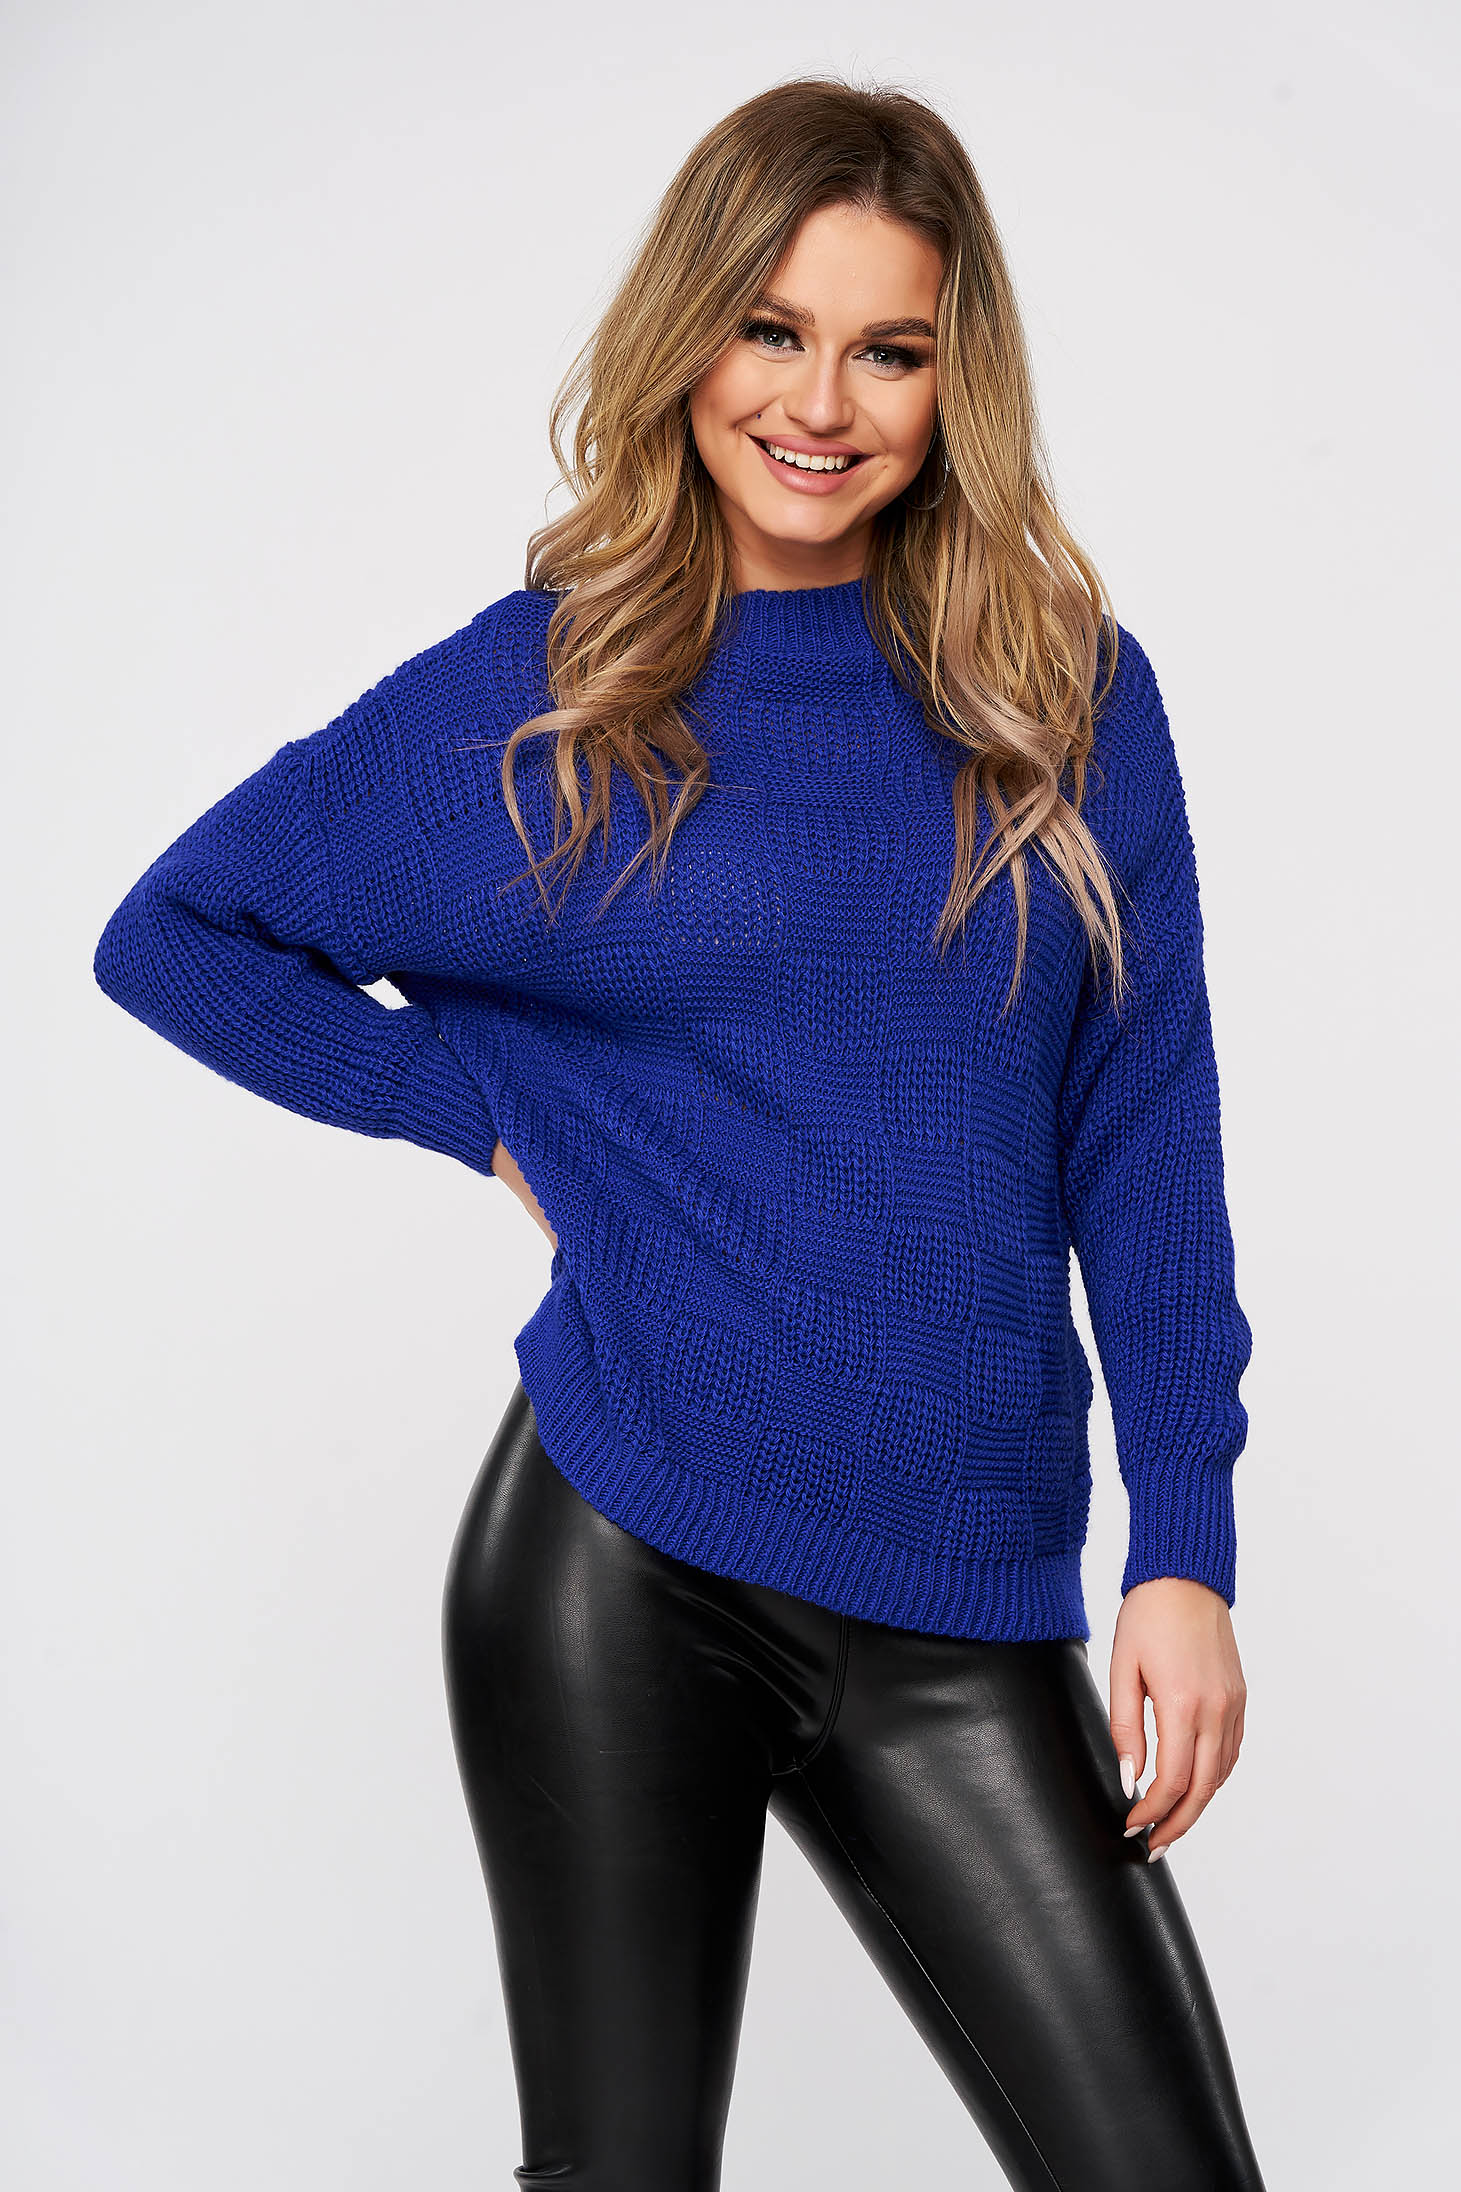 Blue sweater knitted with seams inside the fabric flared casual